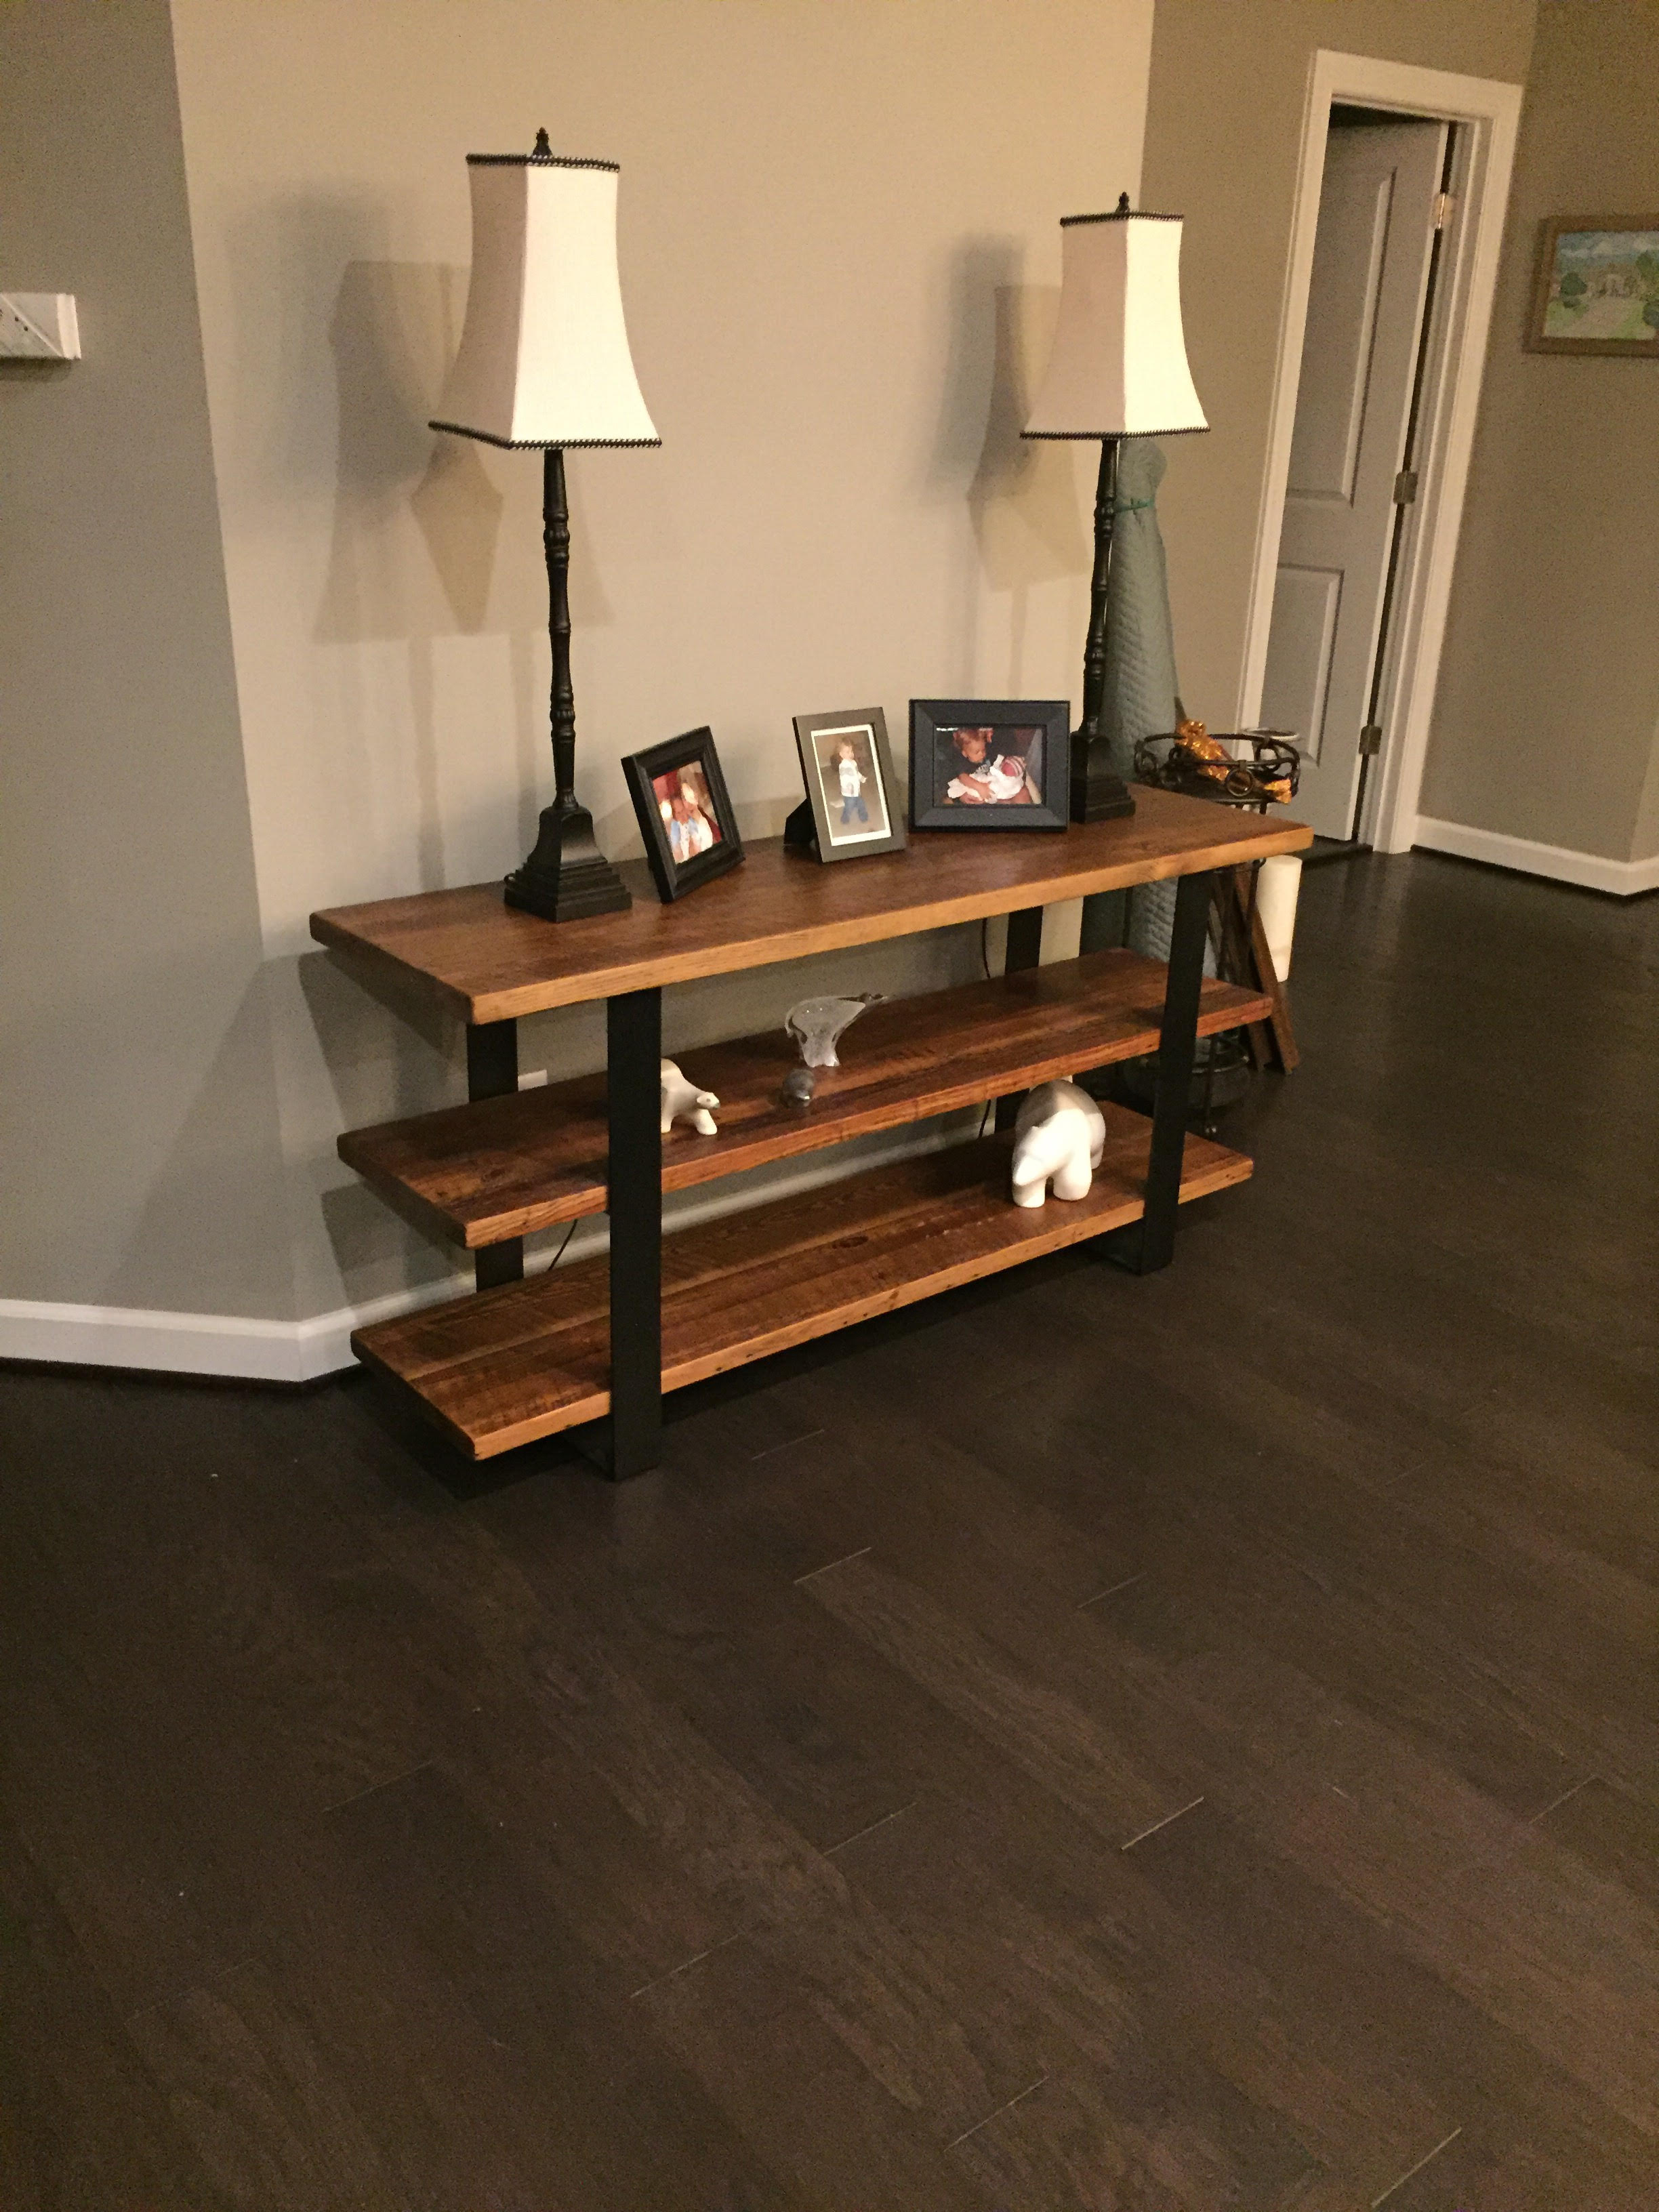 Custom Console Table with Shelves